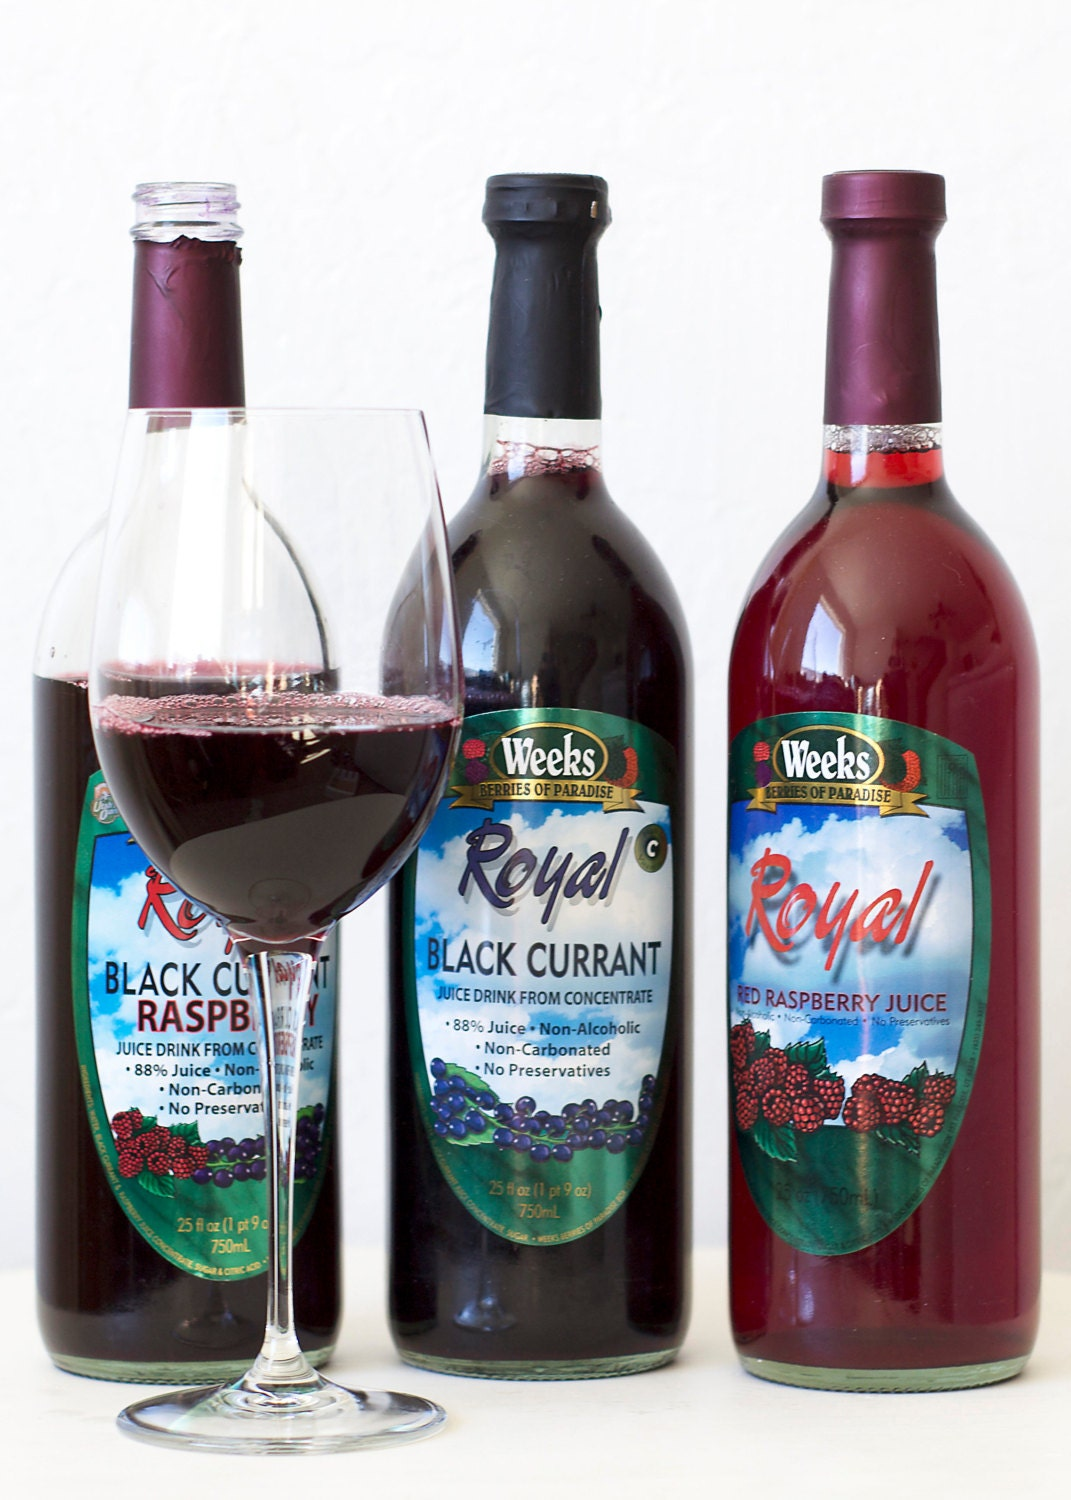 All Natural, Organic, No Preservatives, Royal Red Raspberry Juice, Non-Carbonated - Utah's Own